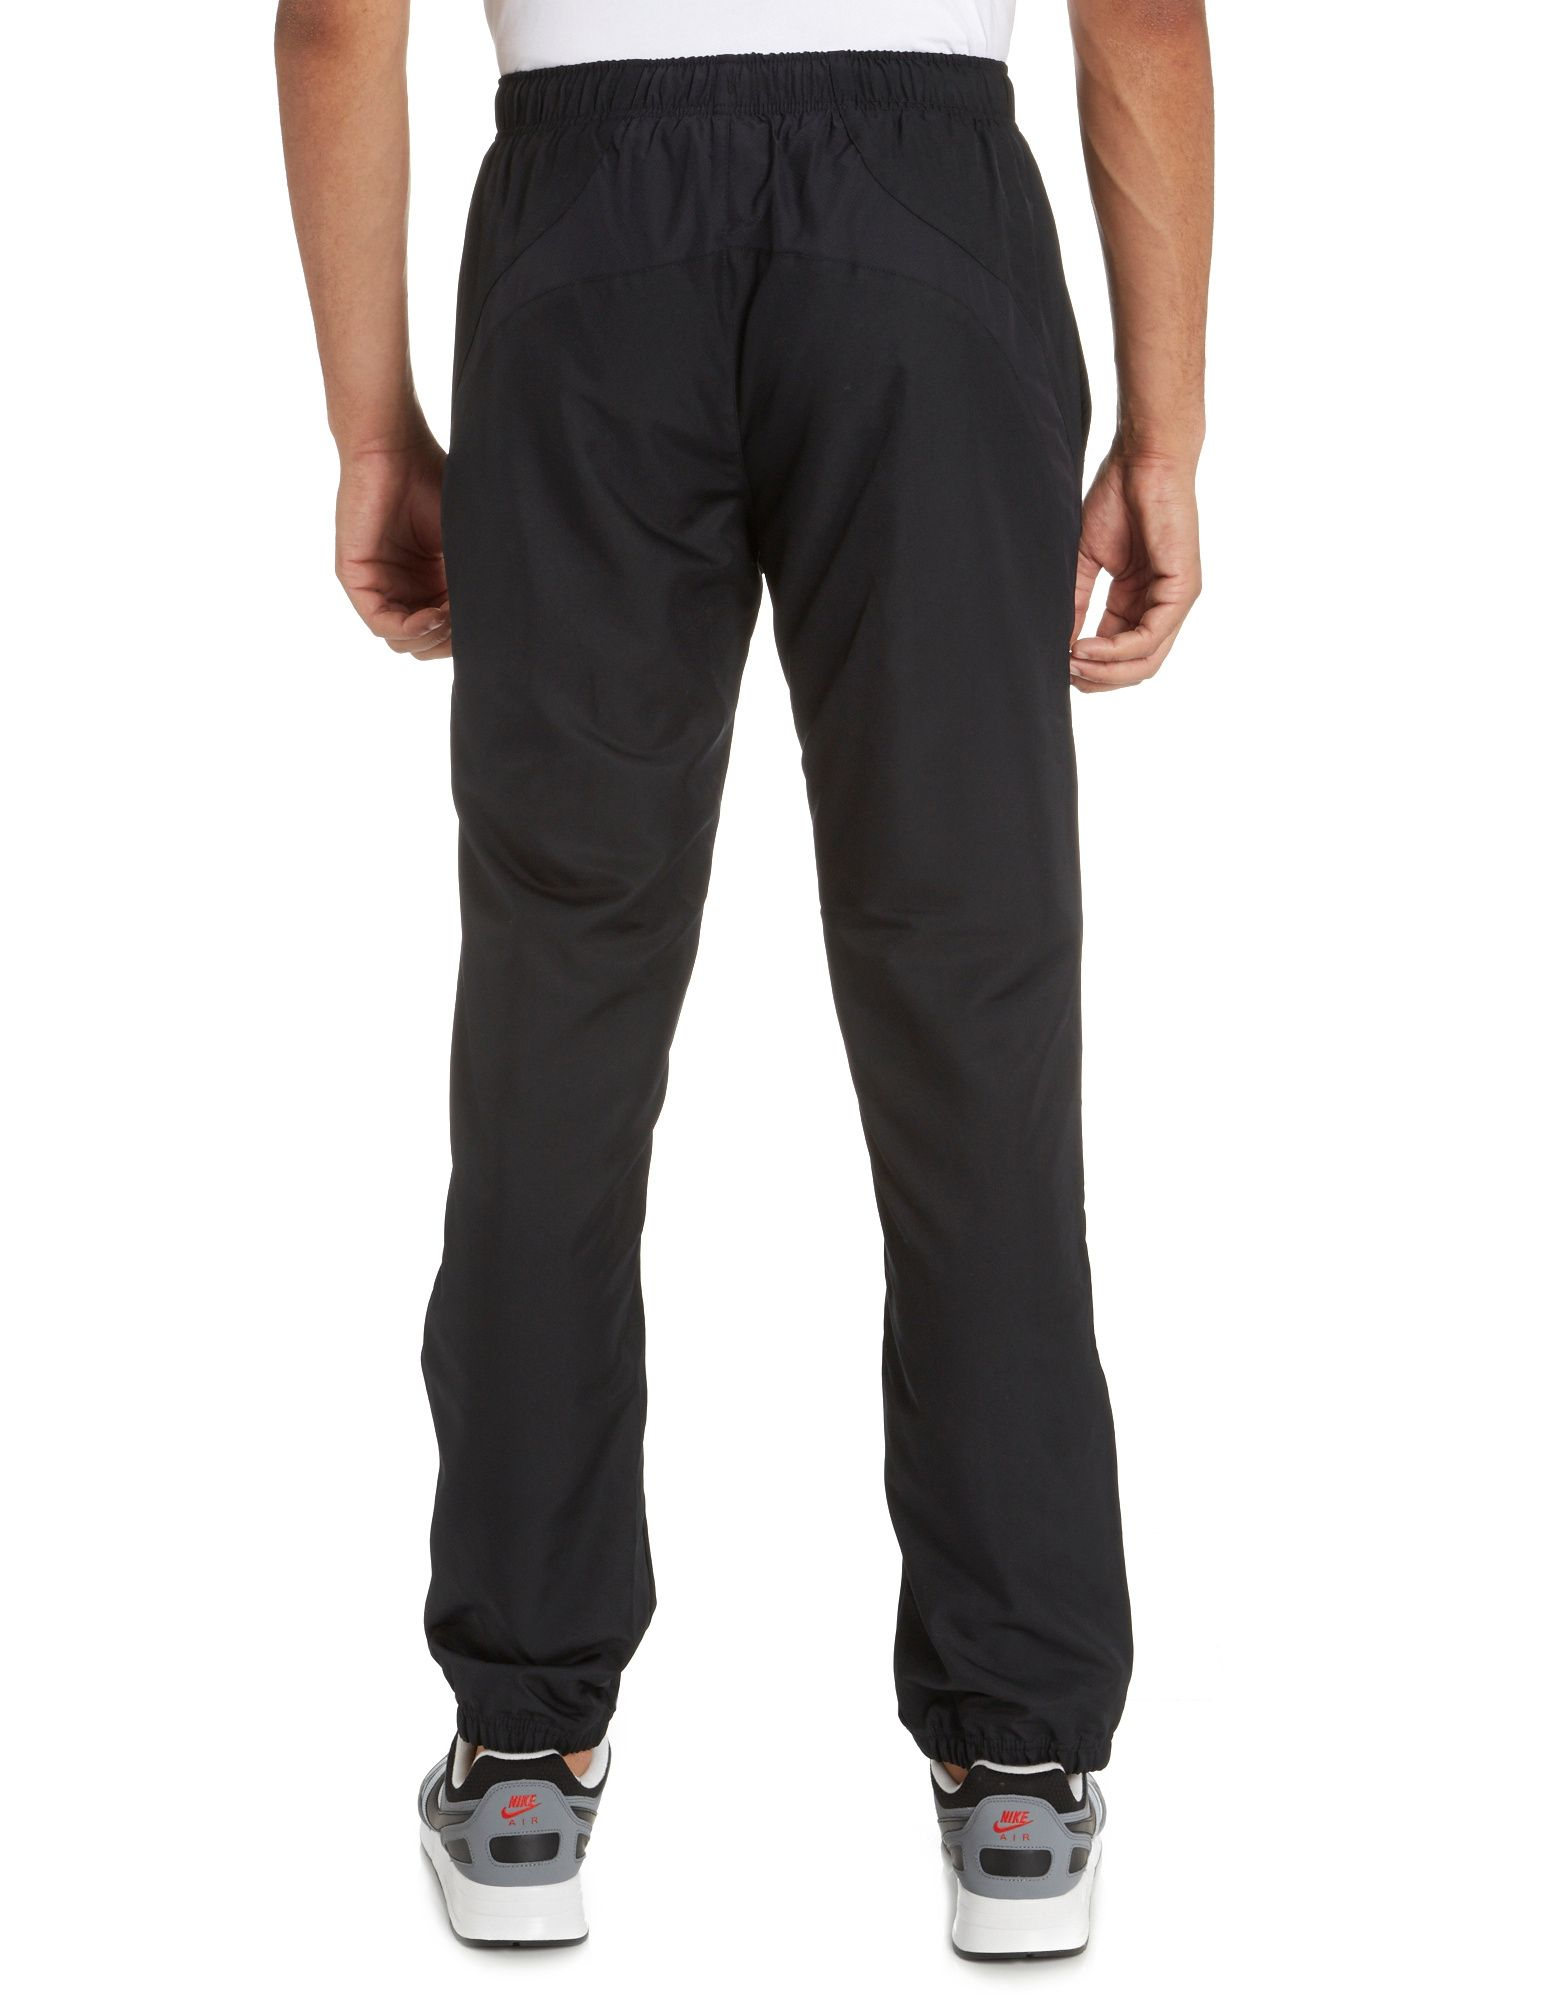 Warrior Sports Liverpool Presentation Track Pants